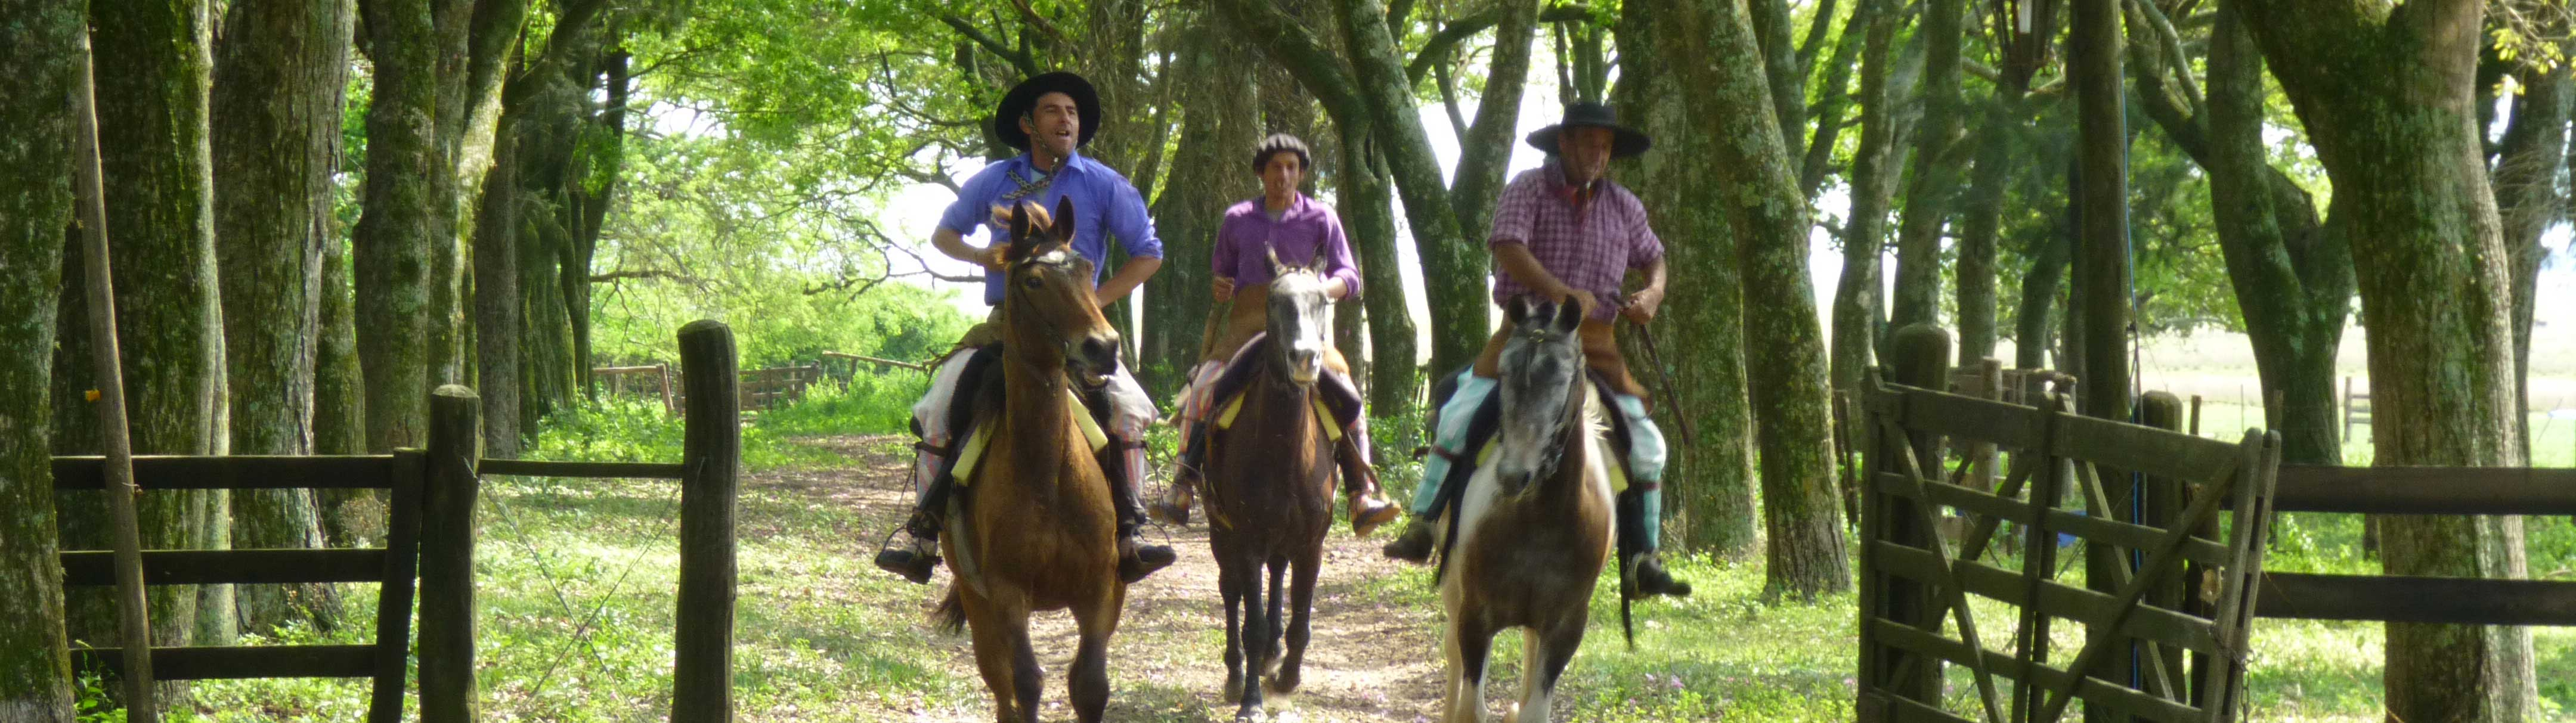 Horse Riding holiday in Argentina, Corrientes, Estancia La Rosita